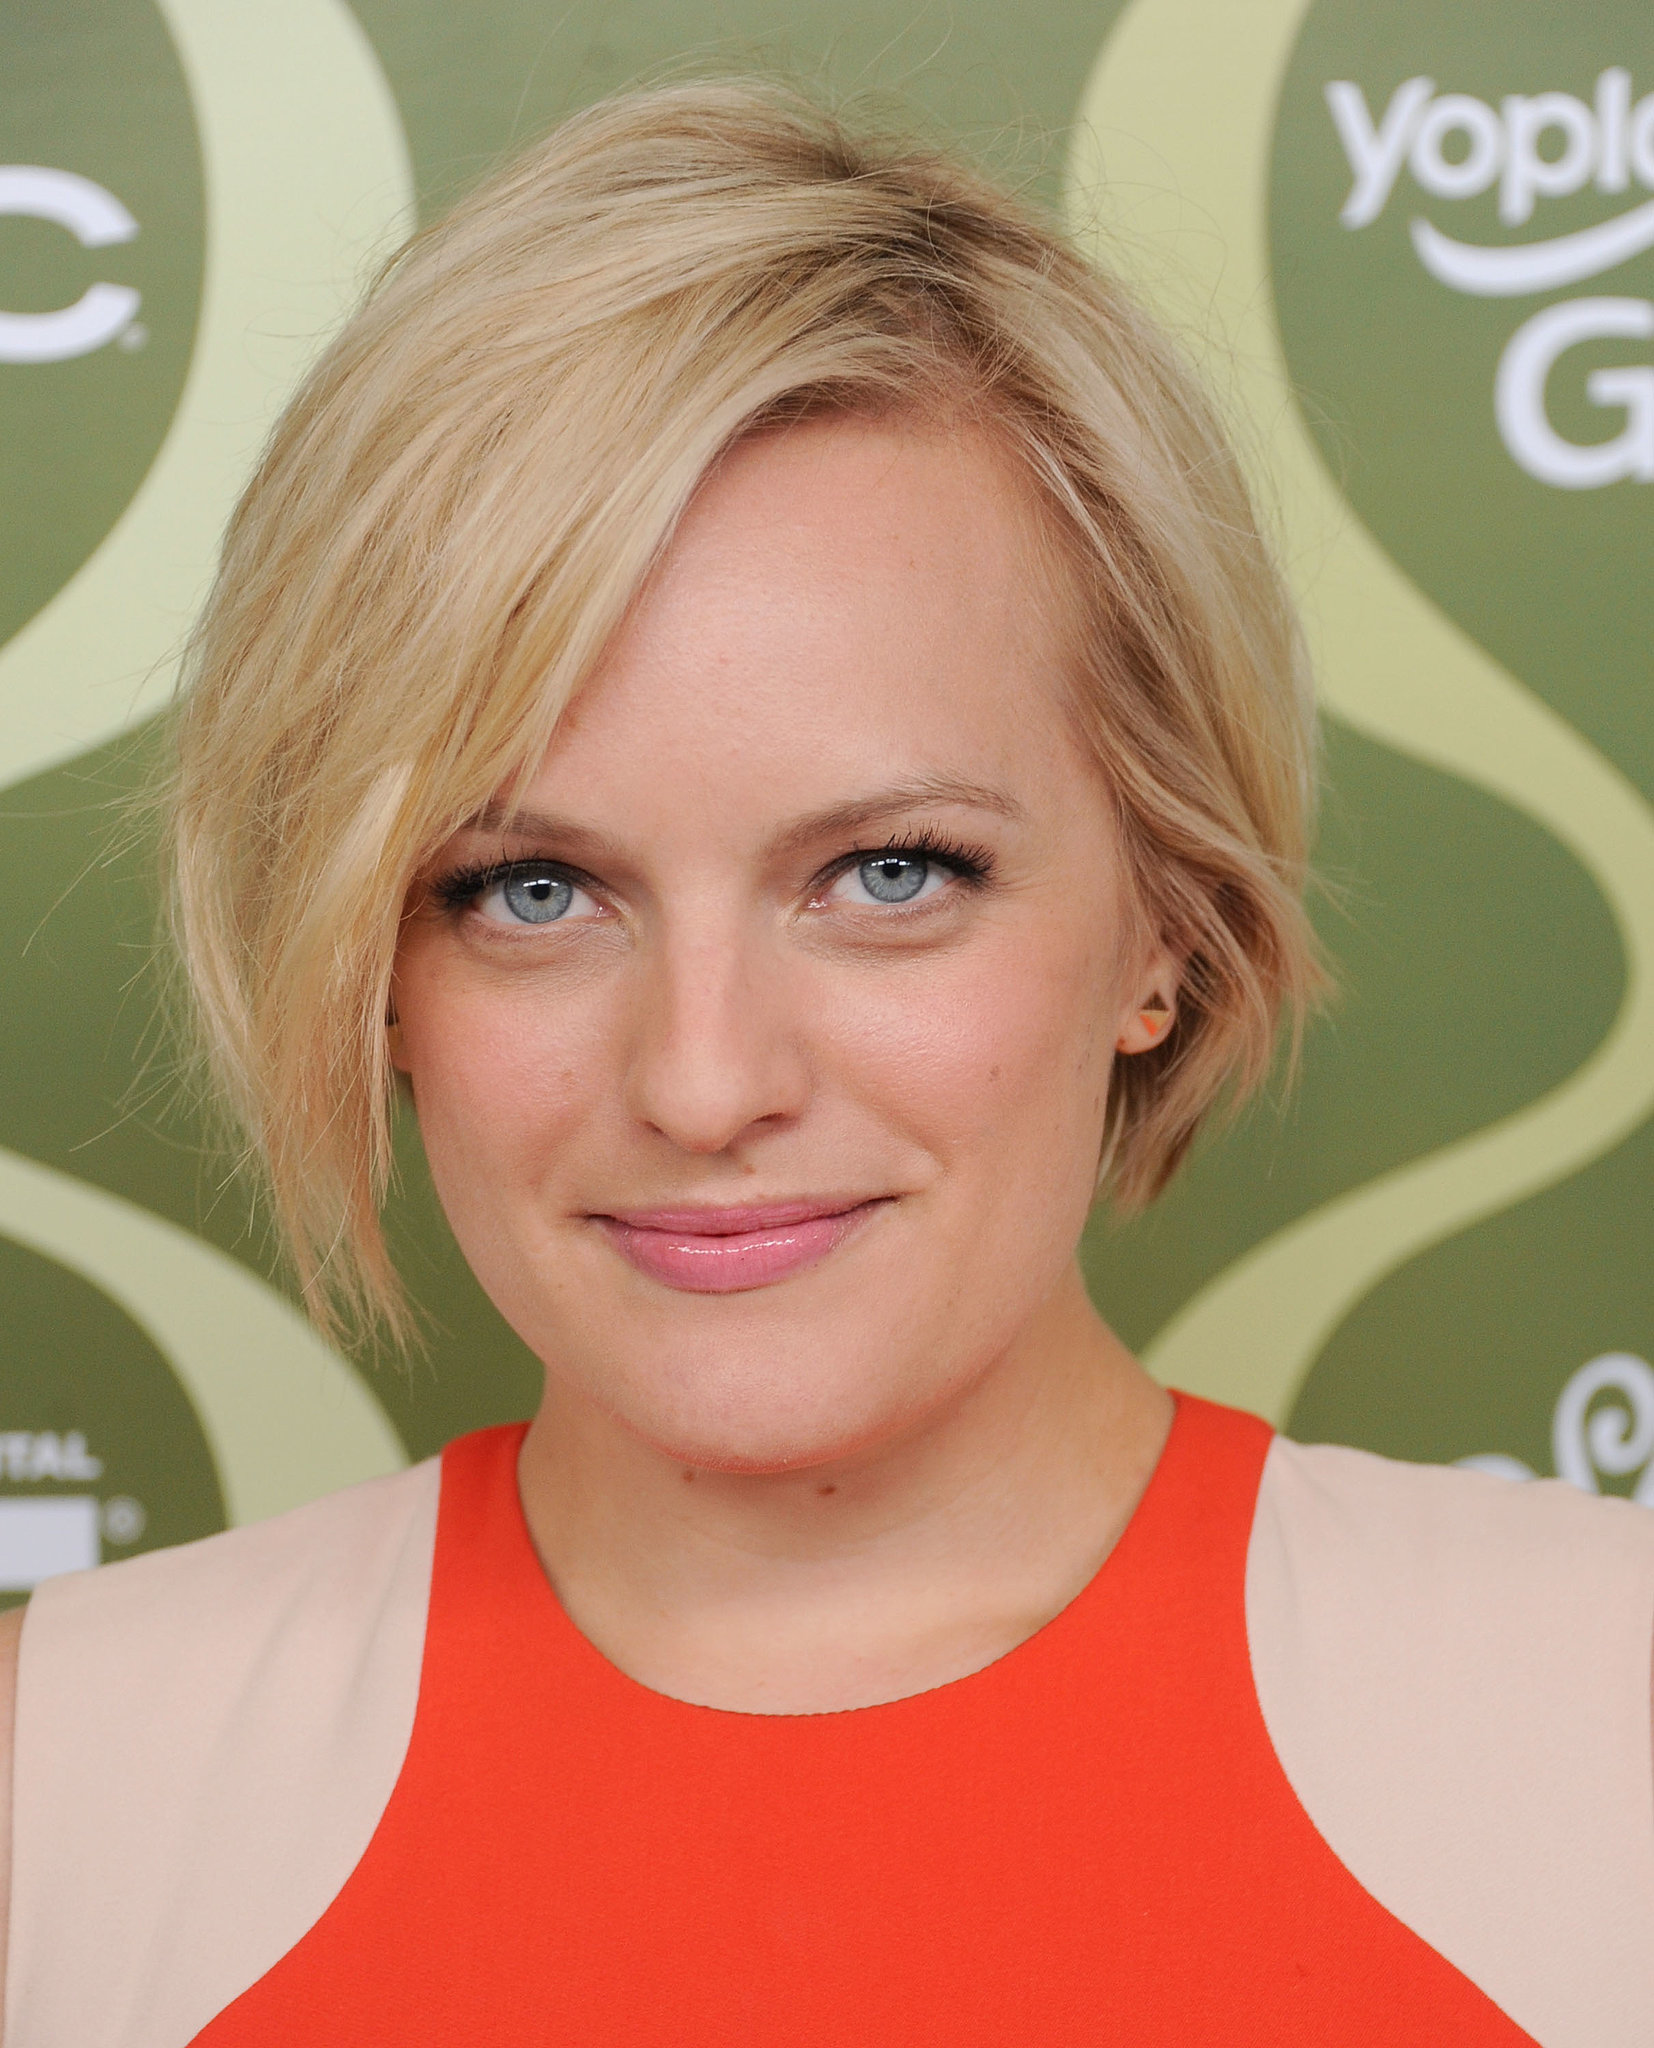 For the Variety pre-Emmy party, Elisabeth Moss styled her short cut in tousled waves, and her make